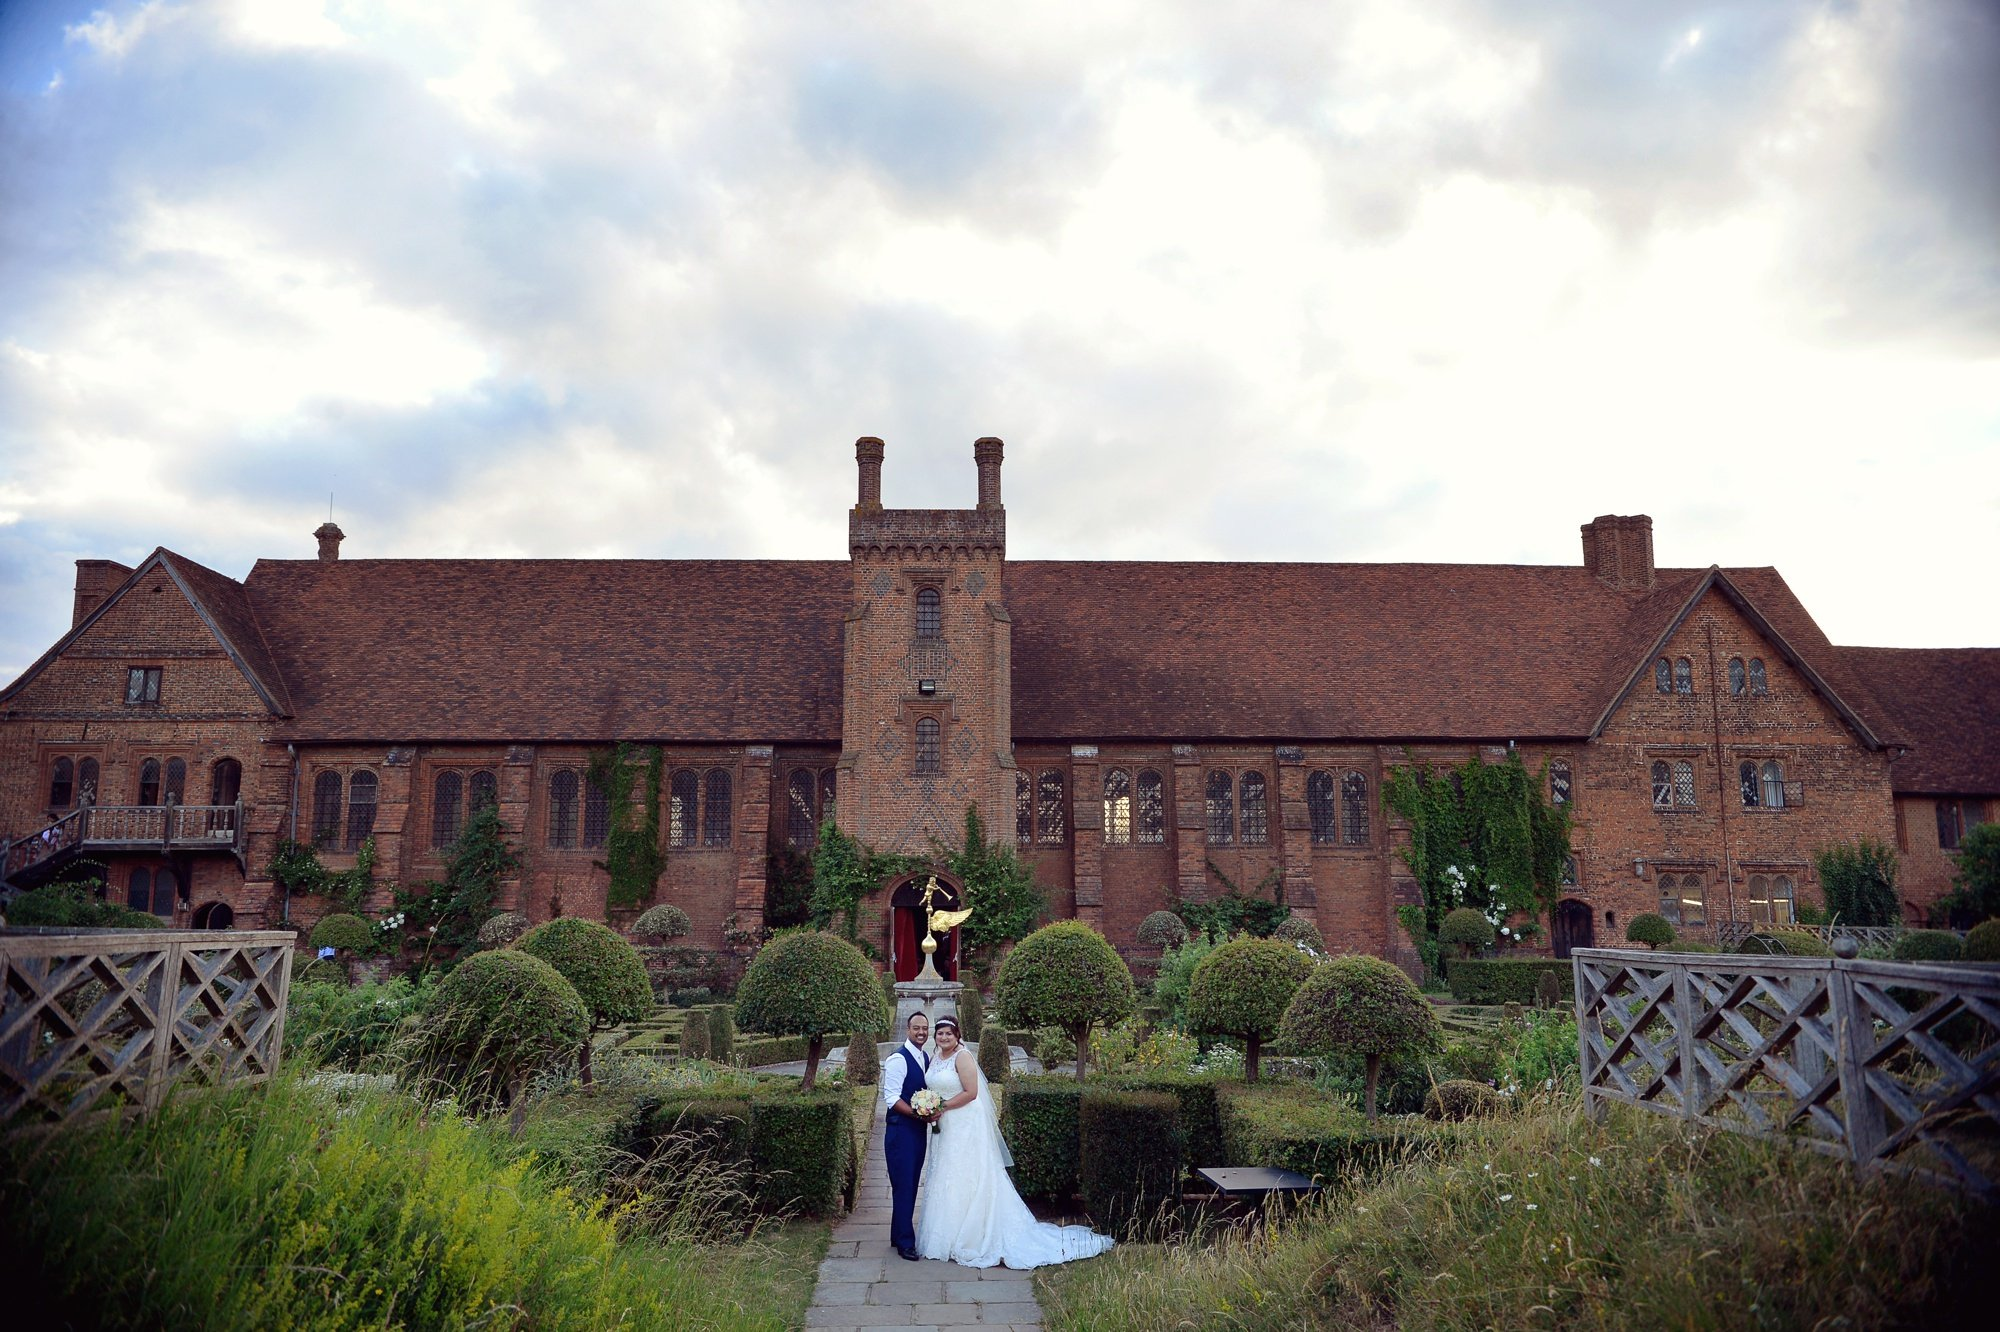 Aisha & Rohits Wedding at the beautiful Hatfield House